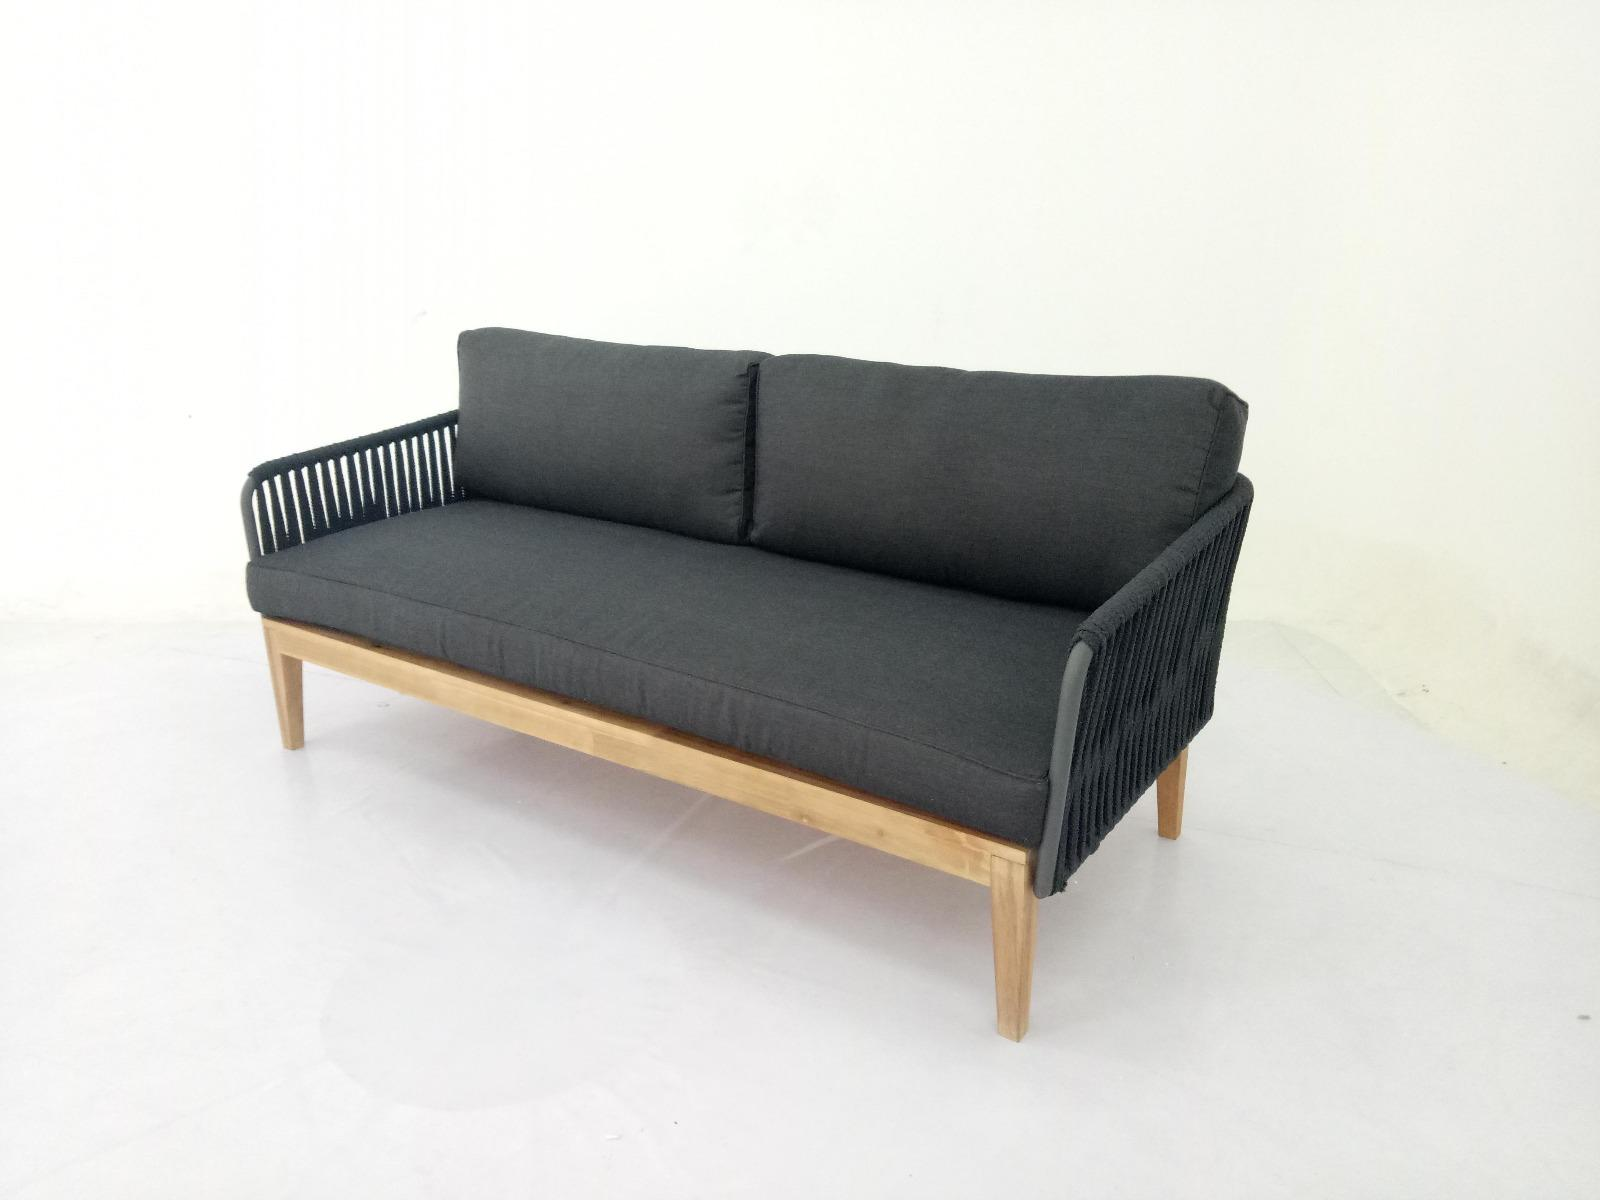 Korting Salamanca 3 seater lounge bench with middle leg (187cm)